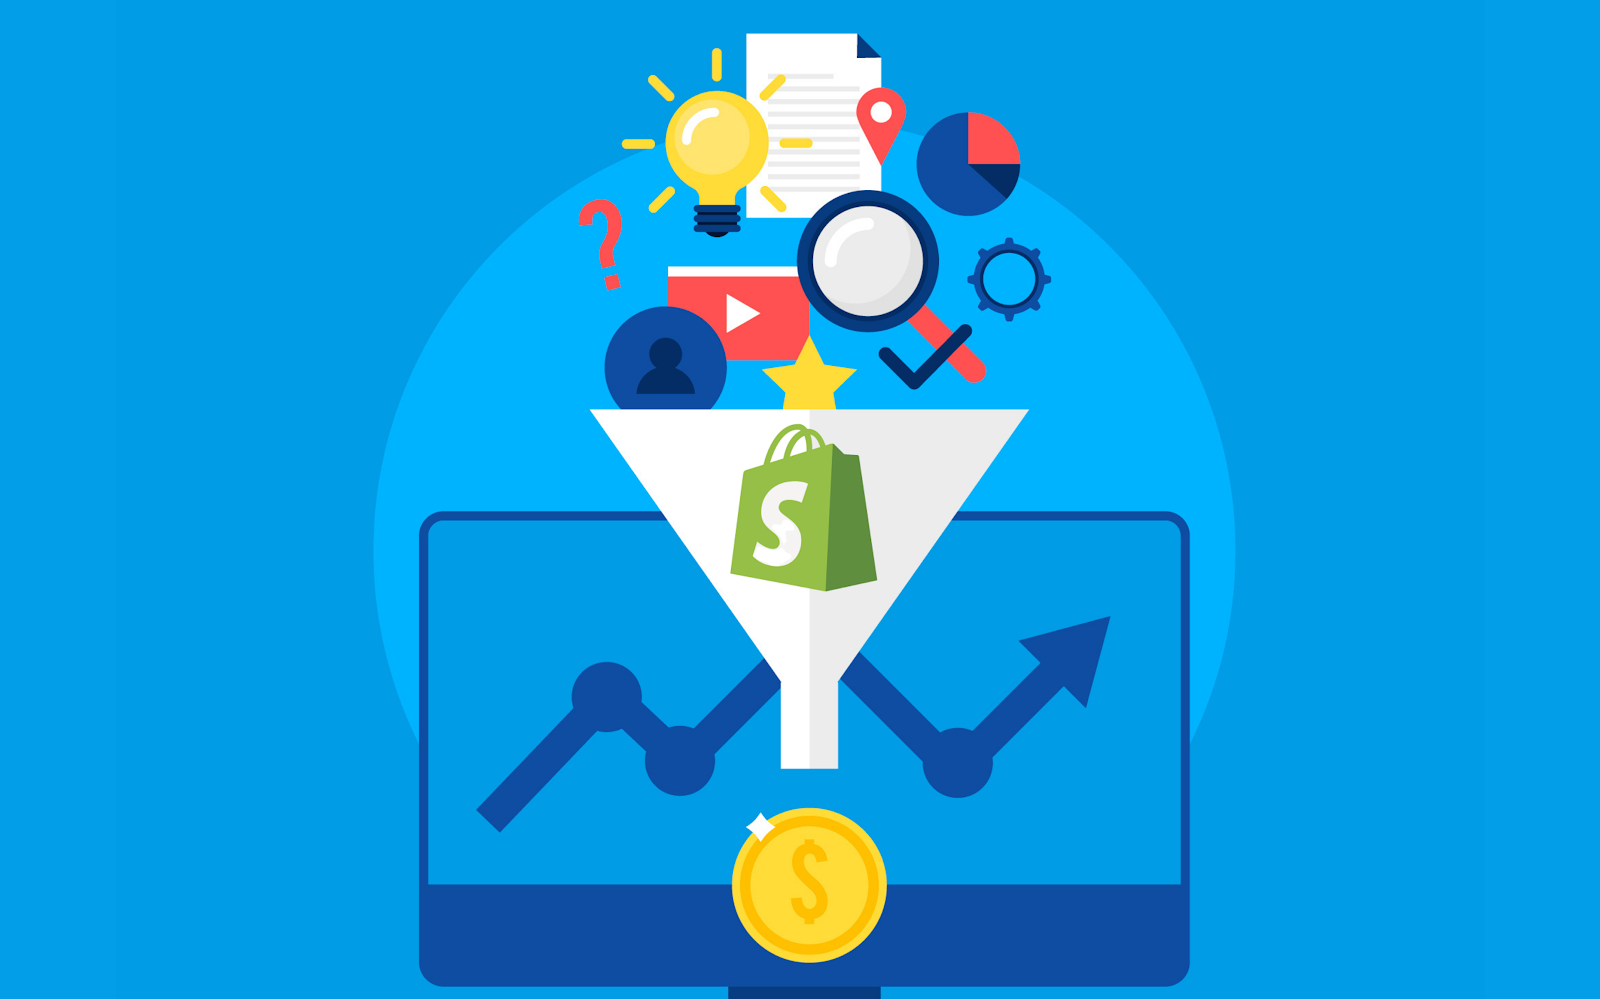 Shopify sales funnel, sales funnel vs Shopify, sales funnel Shopify app, How to create a sales funnel on Shopify?, How to create sales funnel on Shopify